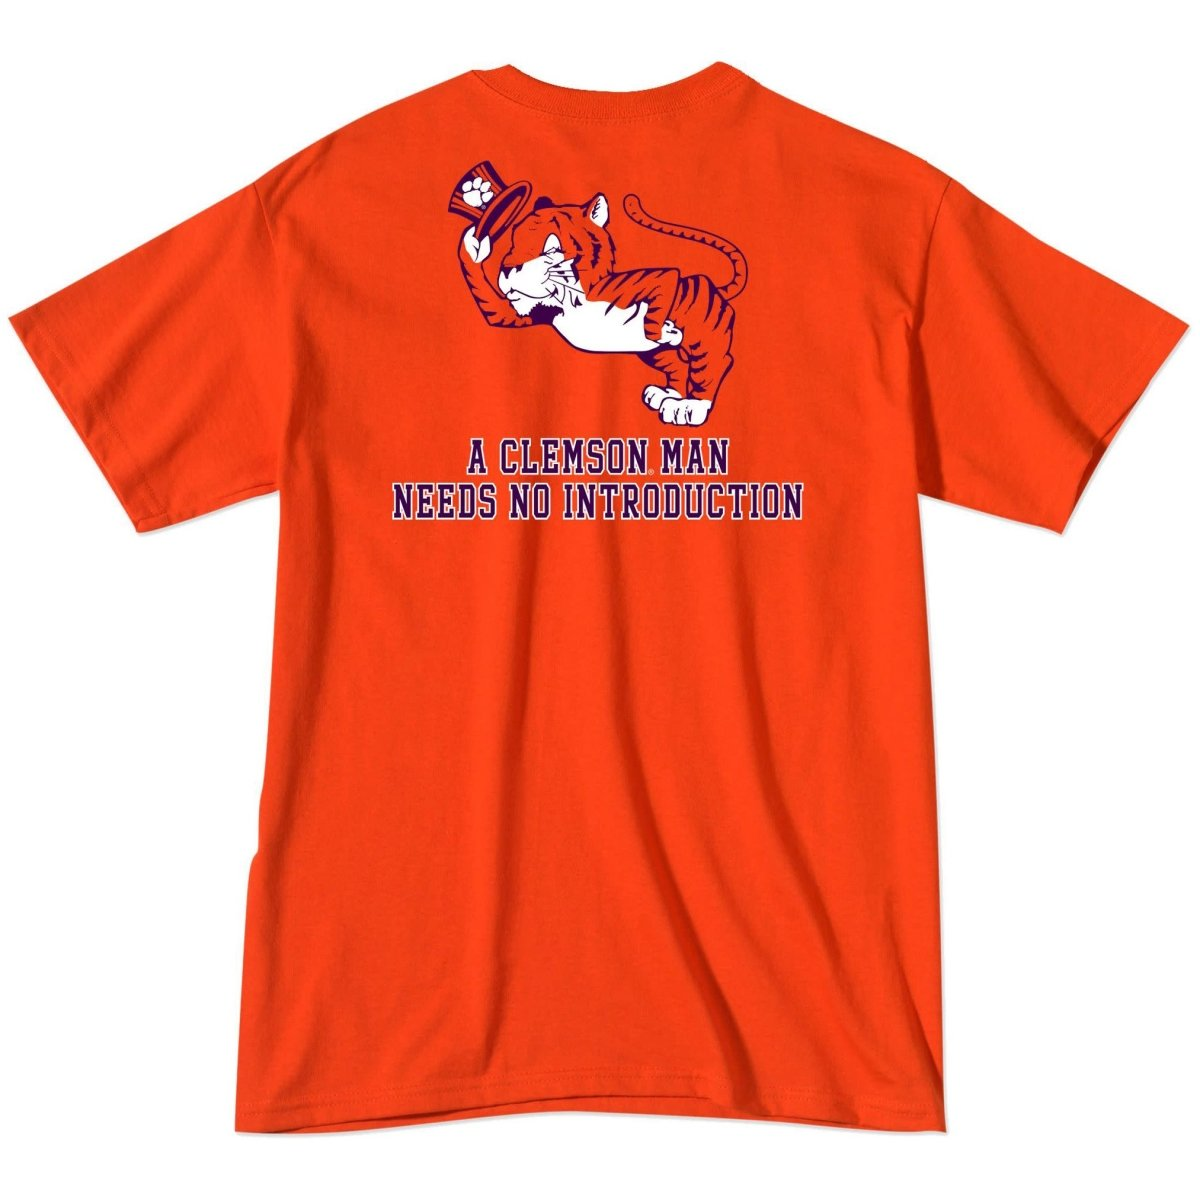 A Clemson Man Needs No Introduction Tee - Mr. Knickerbocker